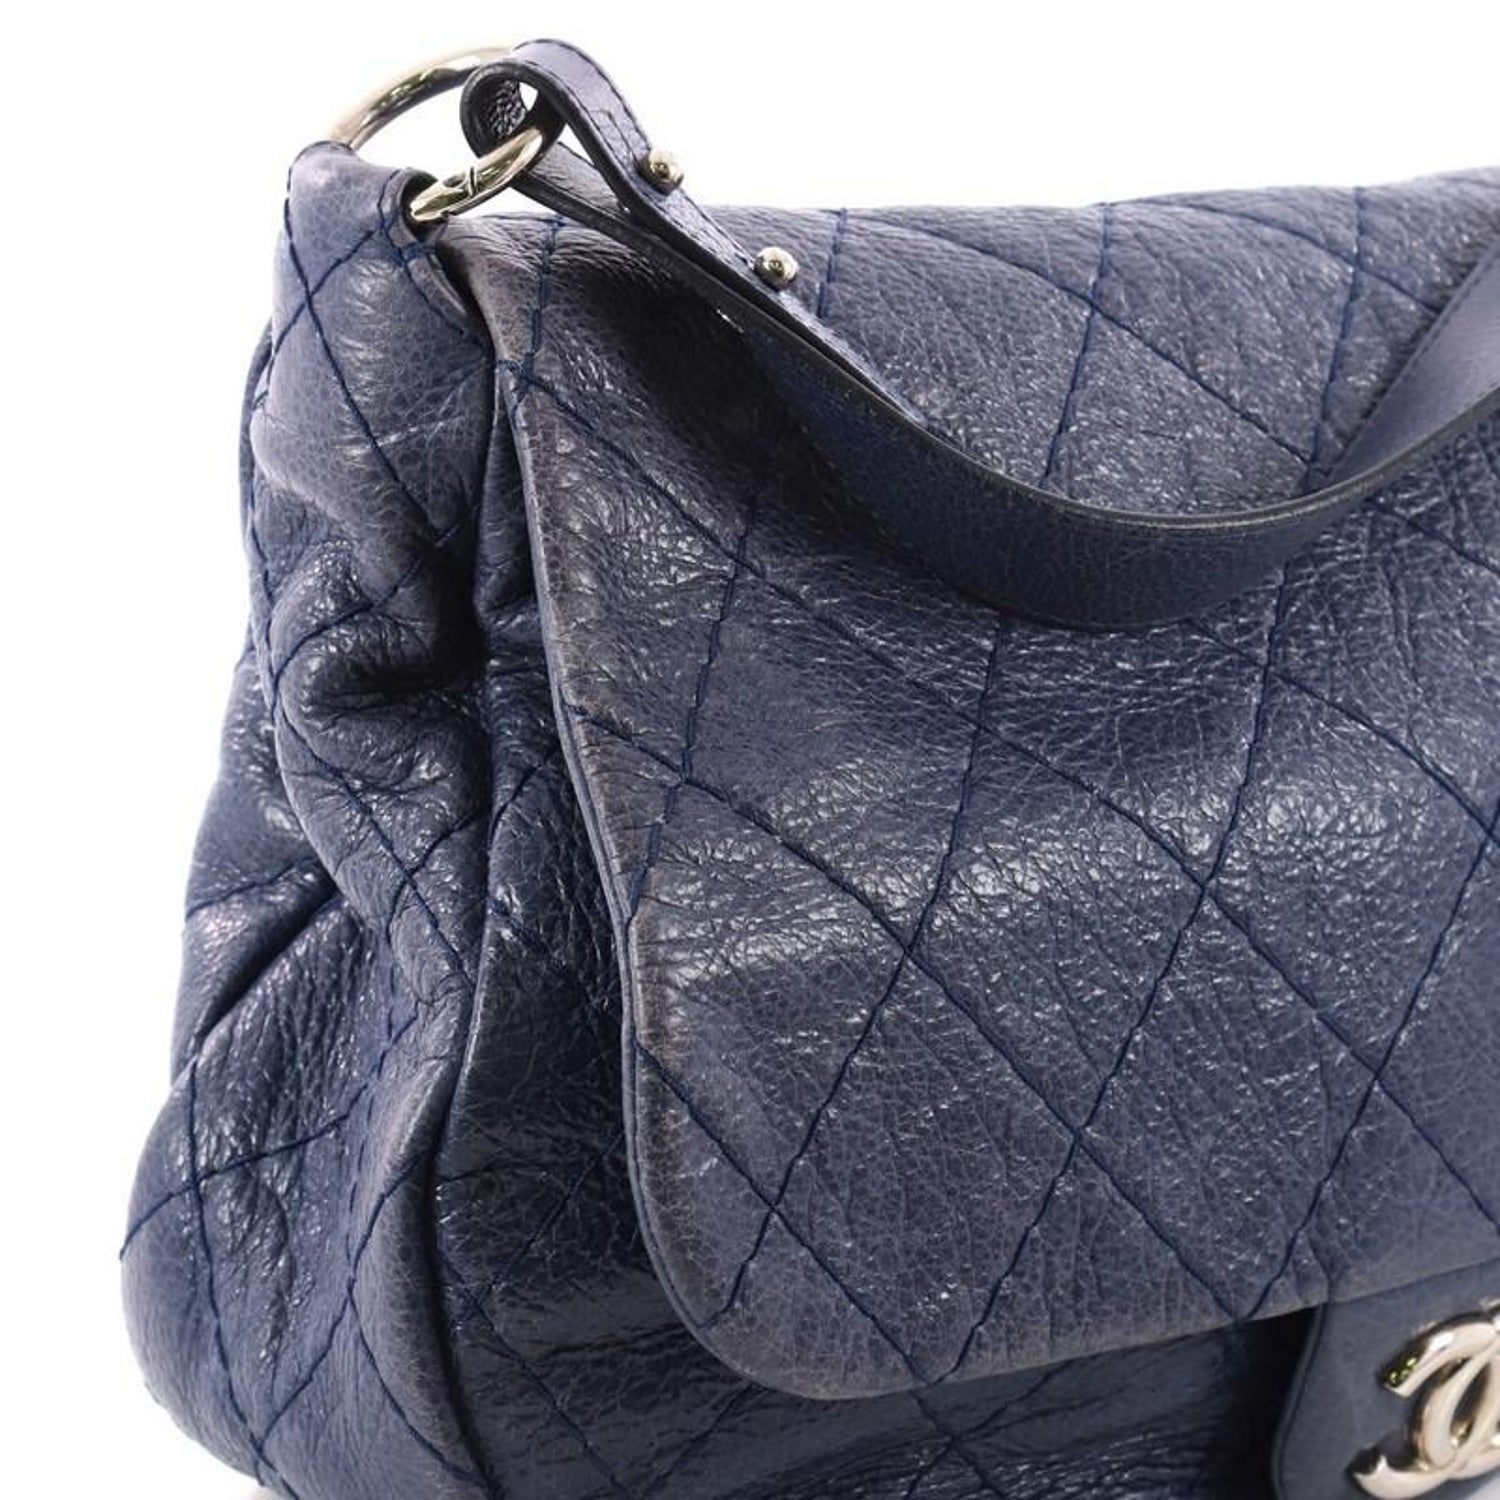 08ed1a8bb6ed Chanel On the Road Flap Bag Quilted Leather Large at 1stdibs